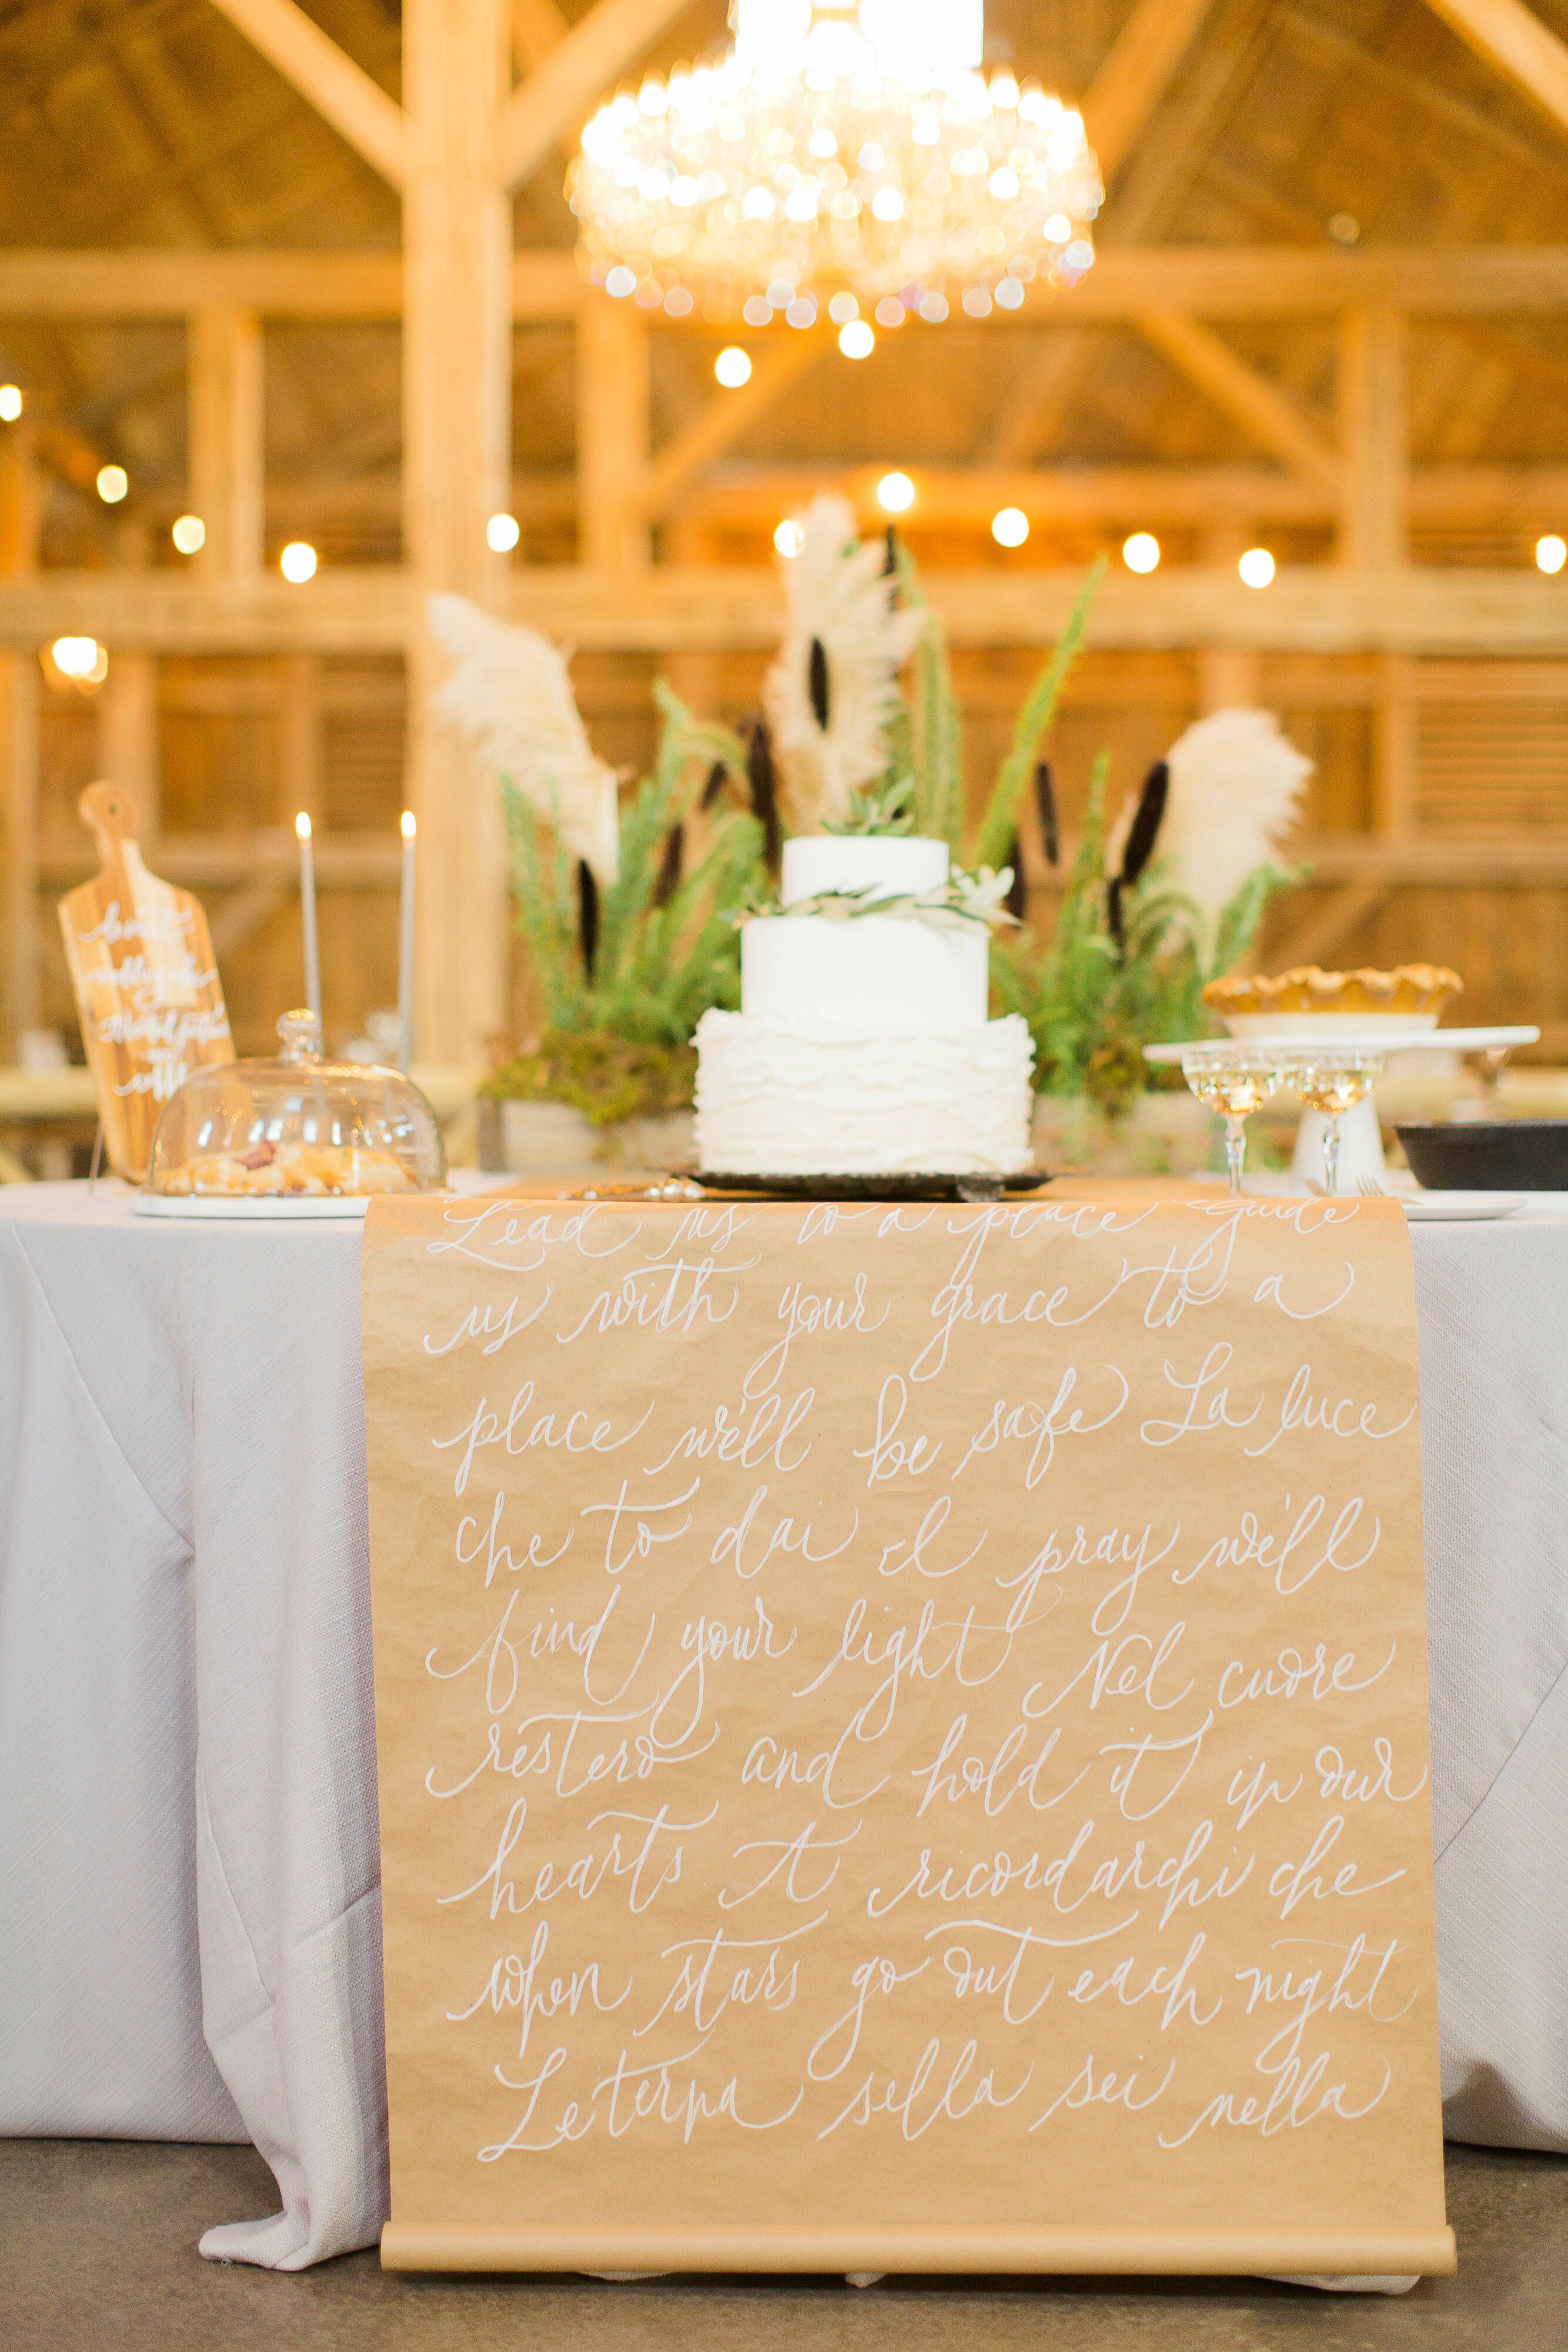 Calligraphers in The Woodlands, TX - The Knot